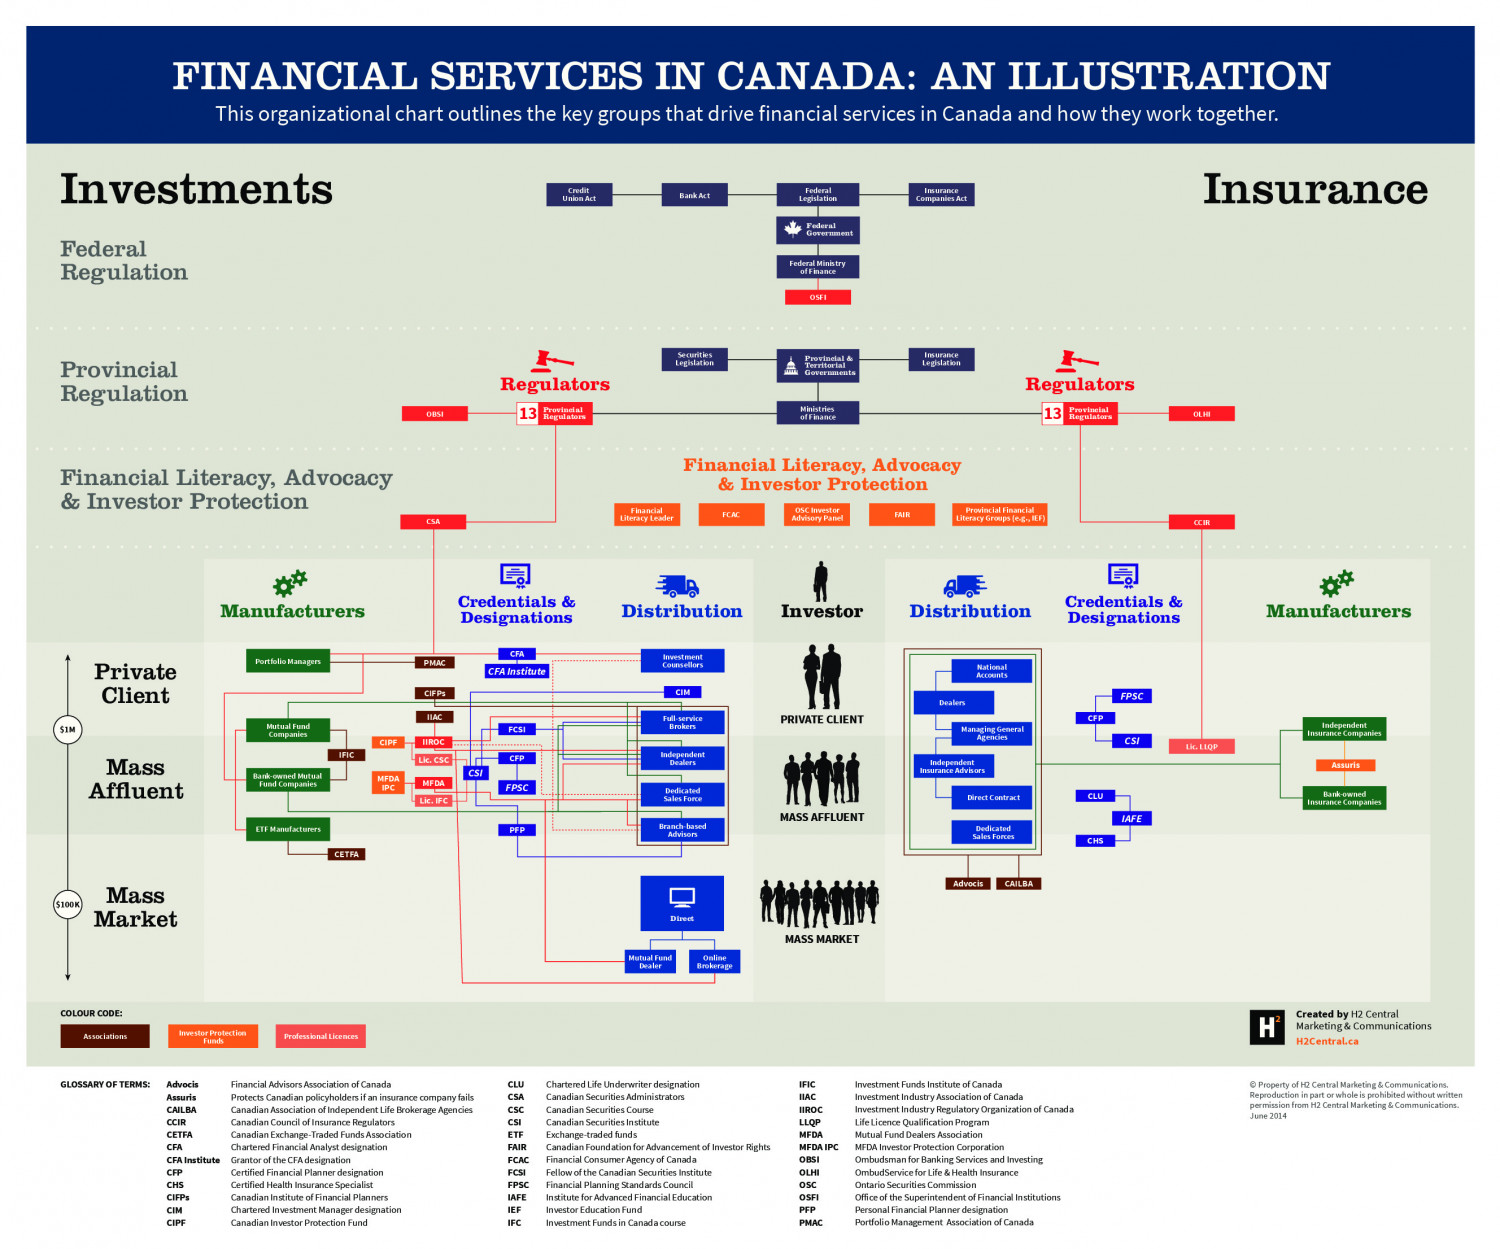 Financial Services in Canada: An Illustration  Infographic